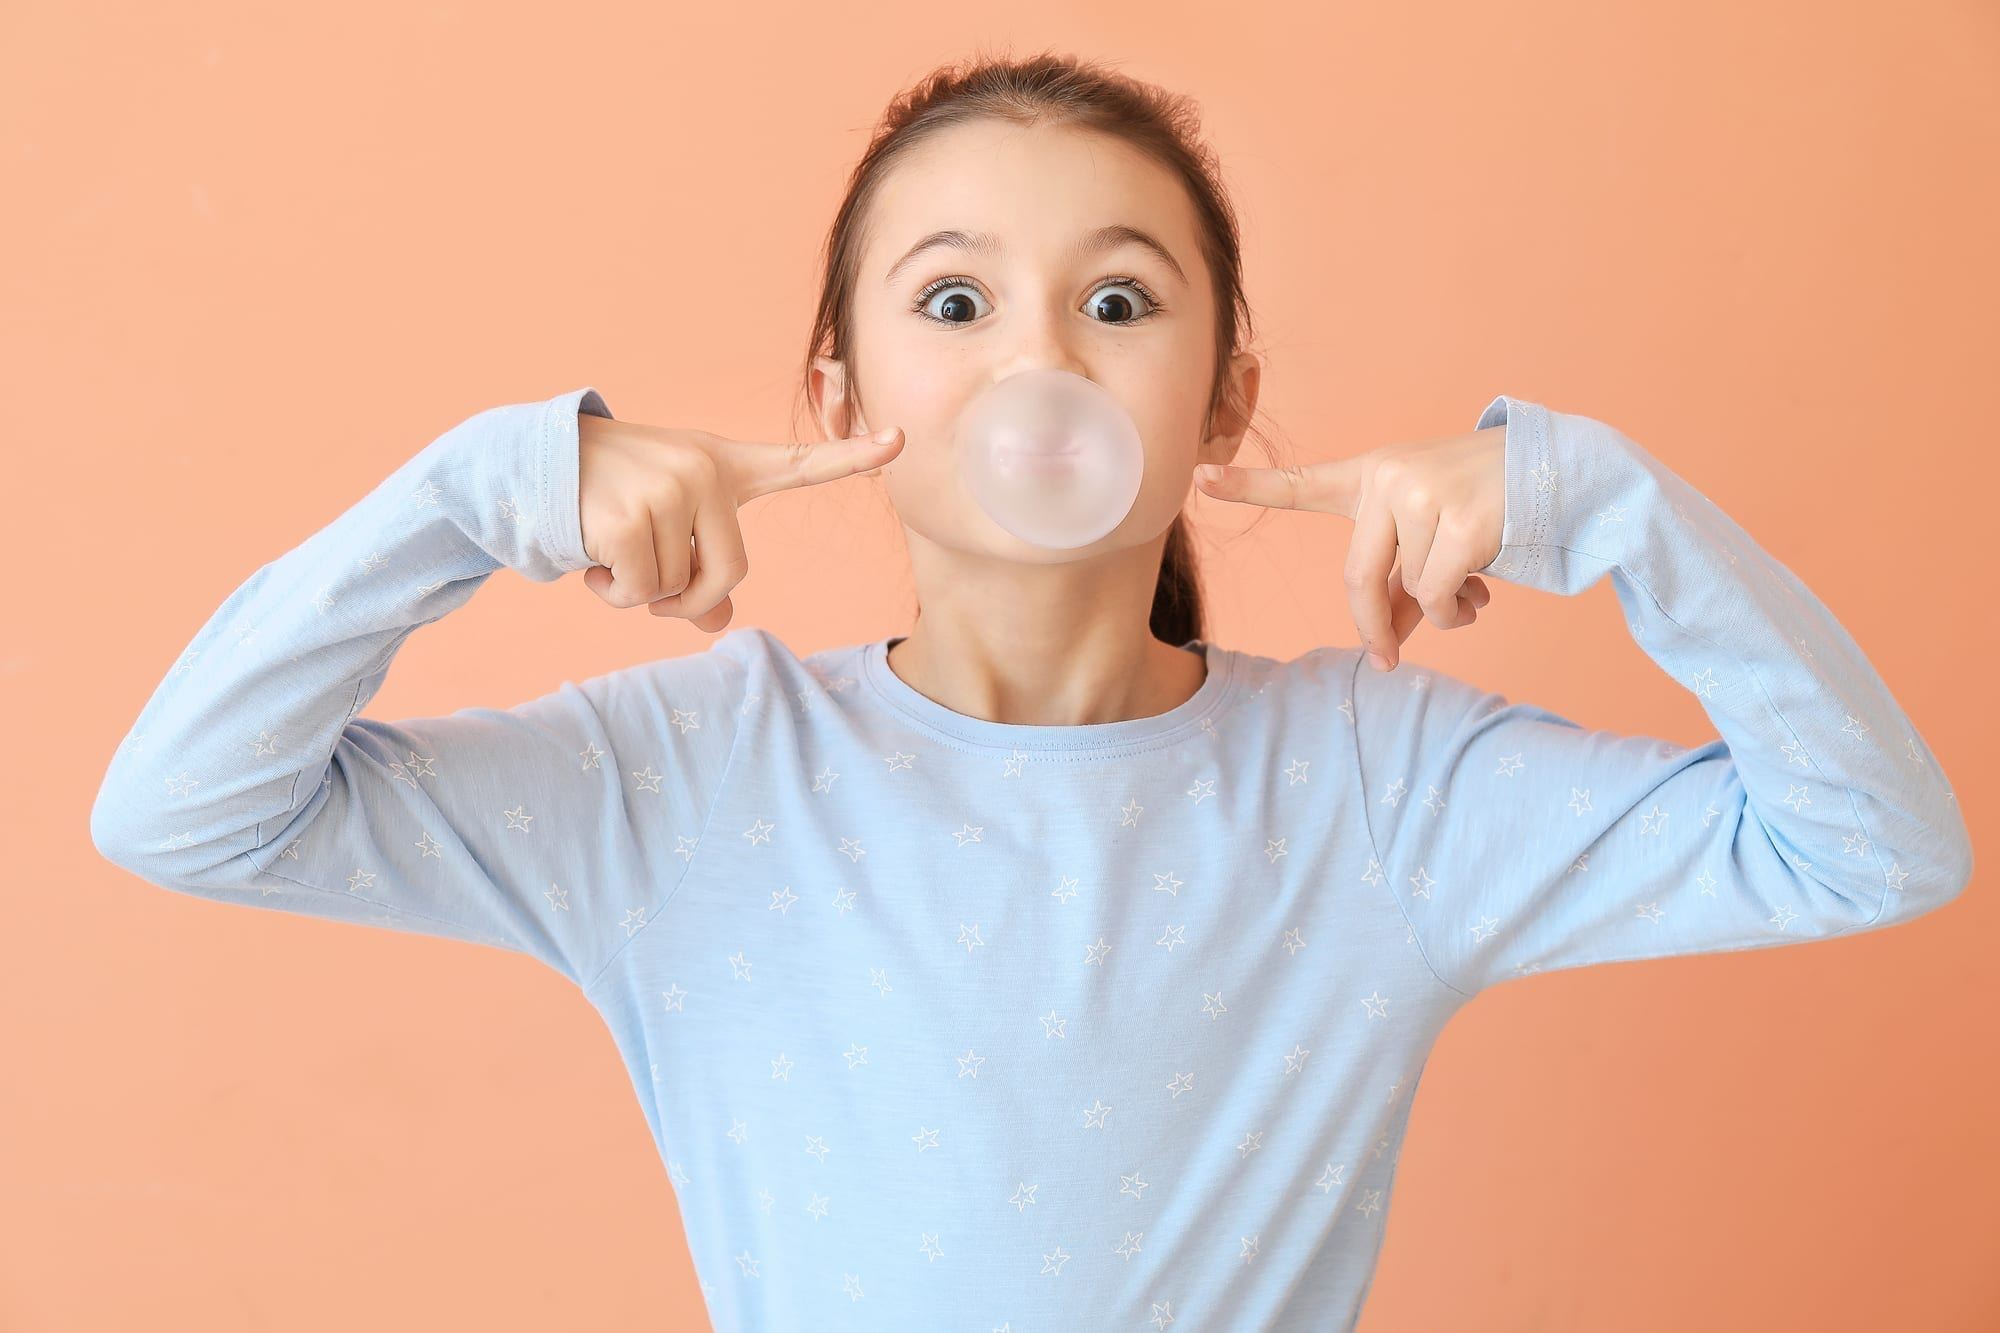 little girl blowing bubble with gum on peach background